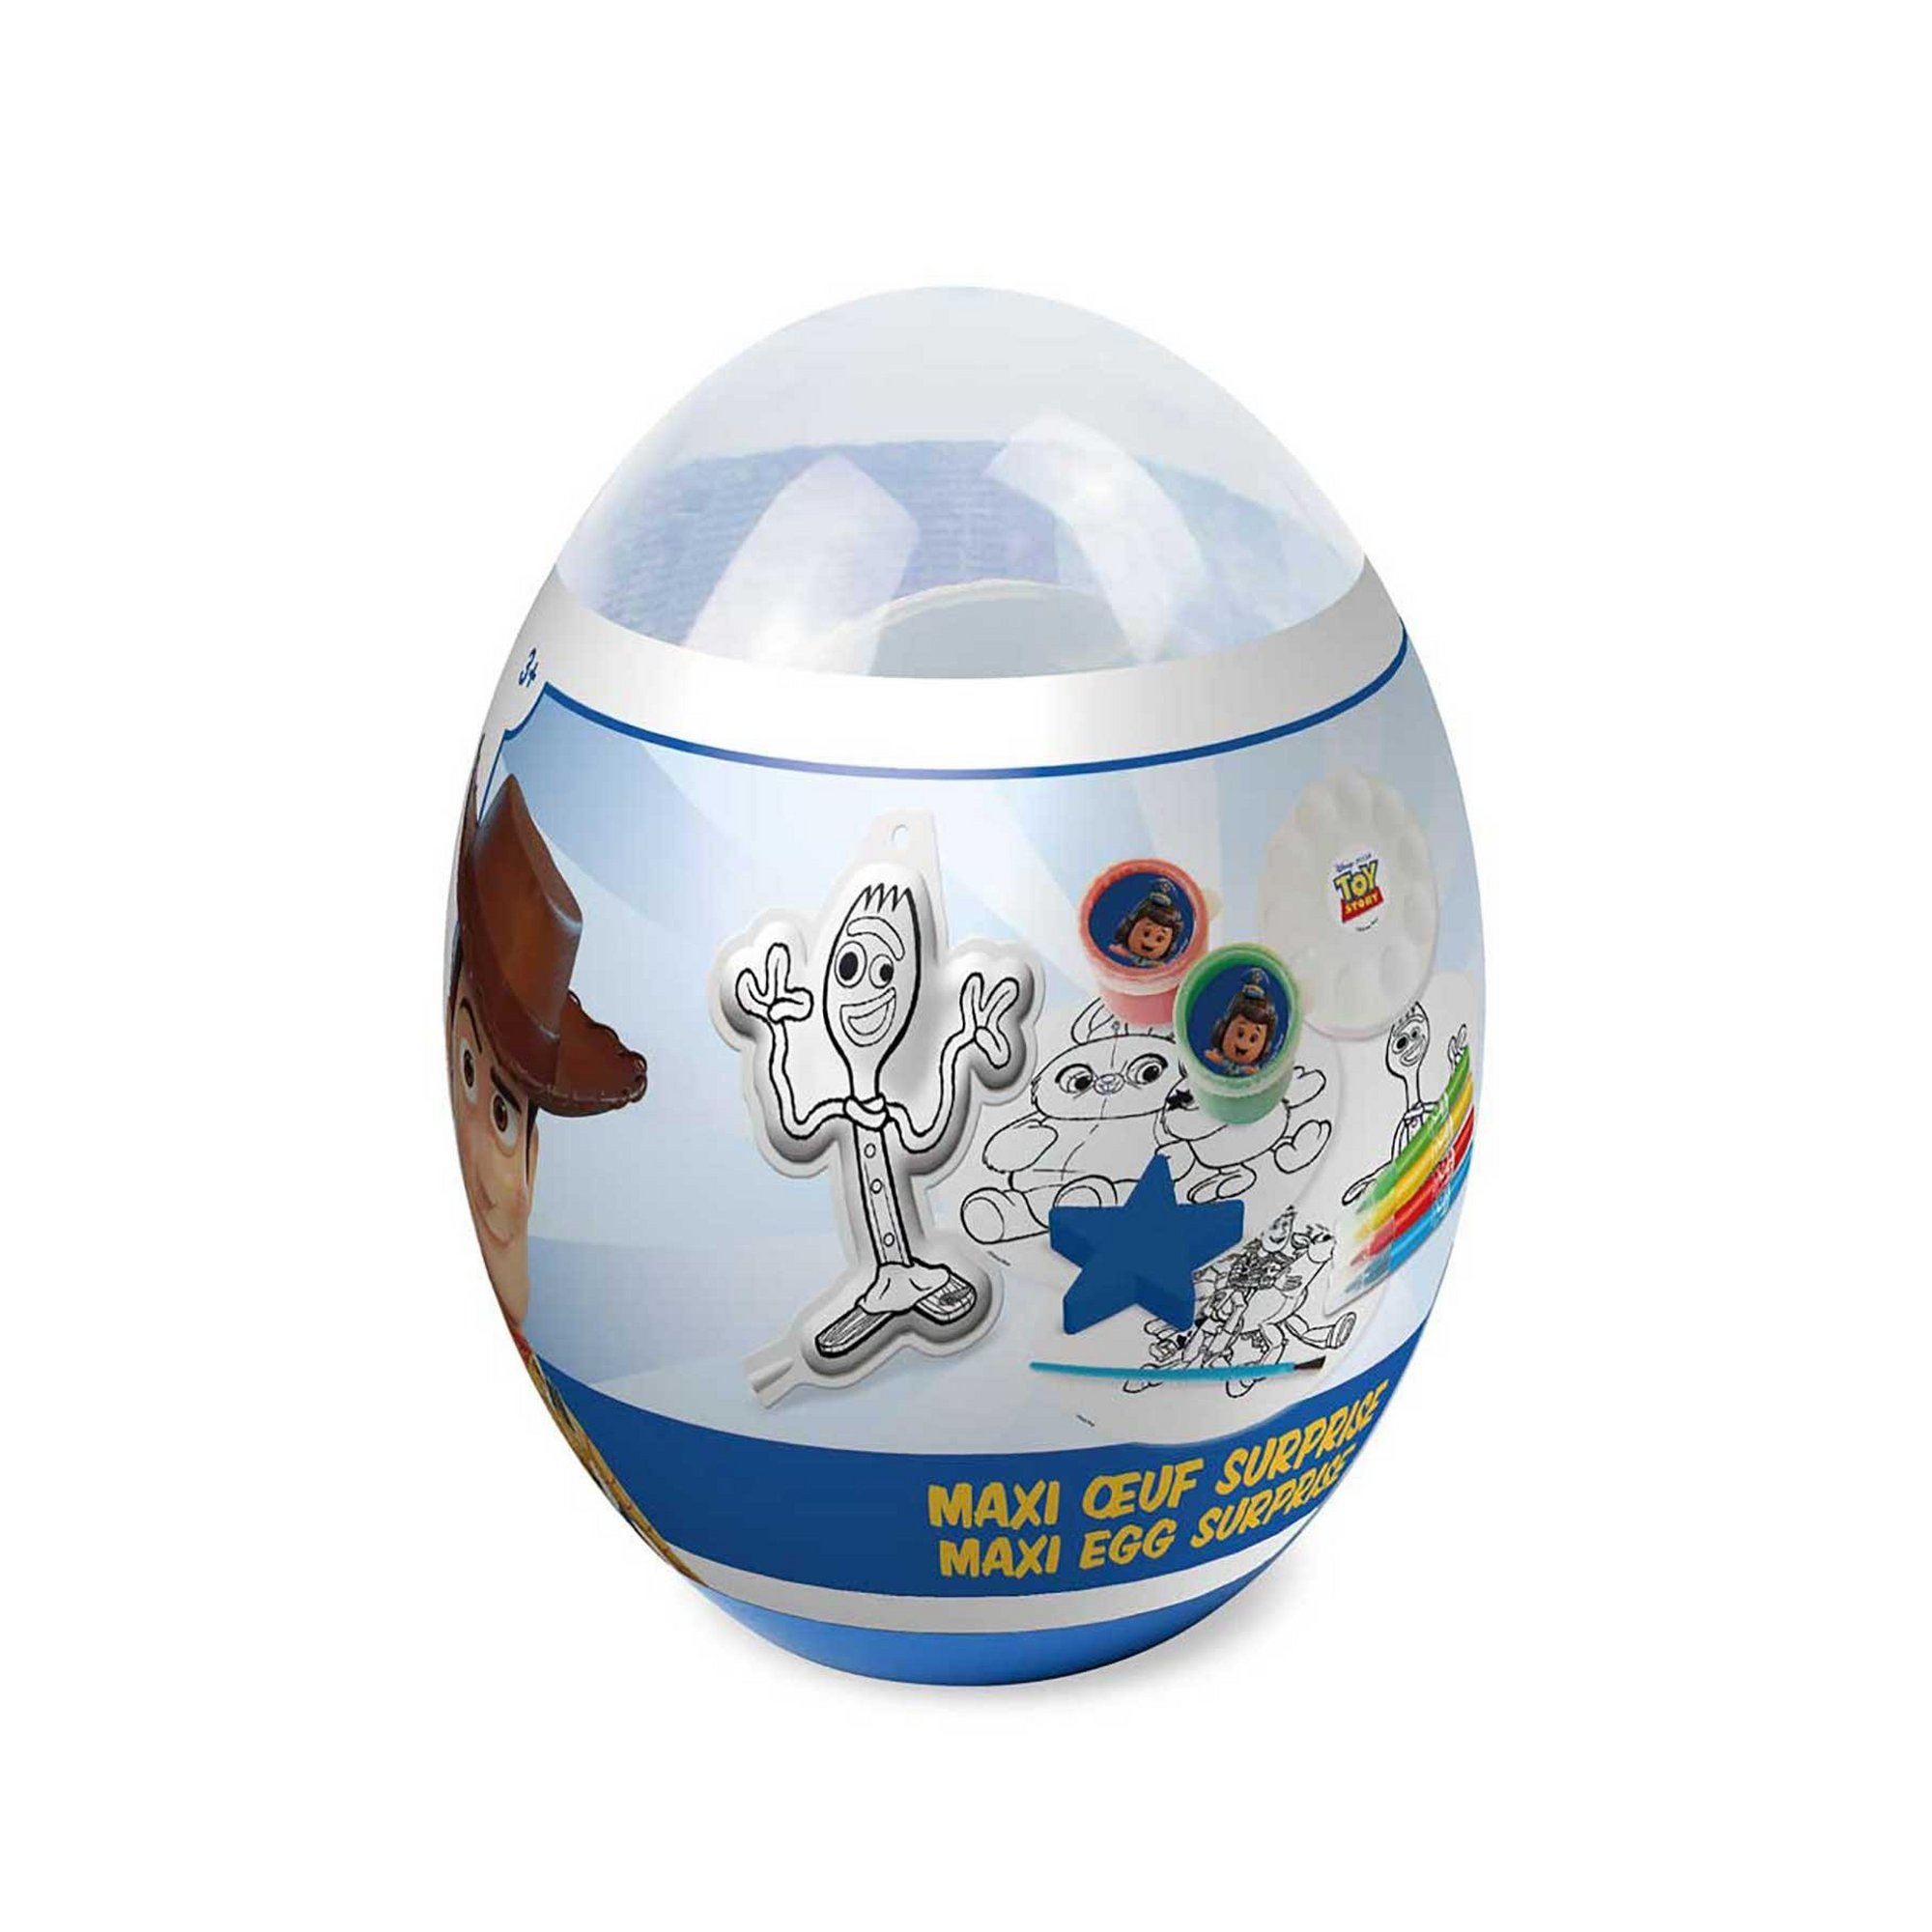 Image of Disney Toy Story 4 Childrens Maxi Egg Surprise with Creative Acce...